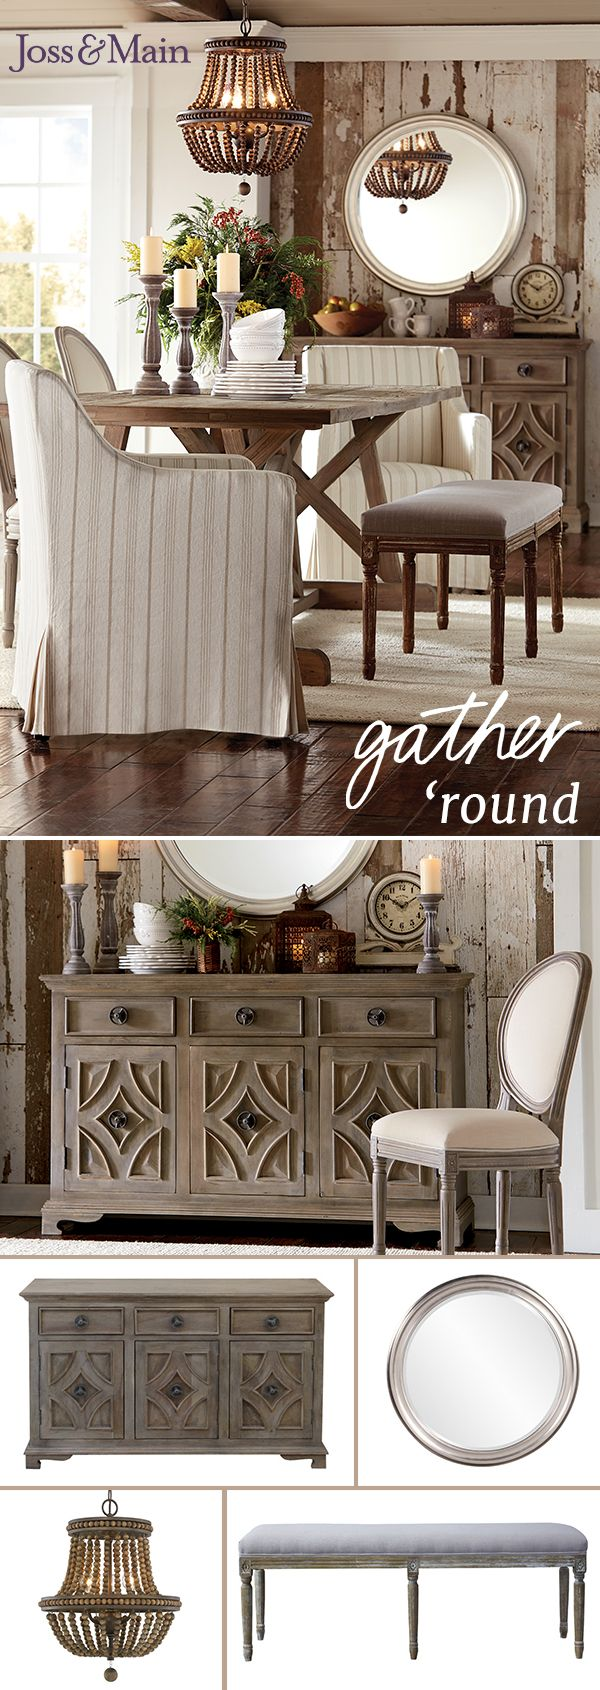 Beautiful Home Decor Beautifully Priced Buffet ServerBar AccessoriesSales TodayDining SetsDining RoomsIn